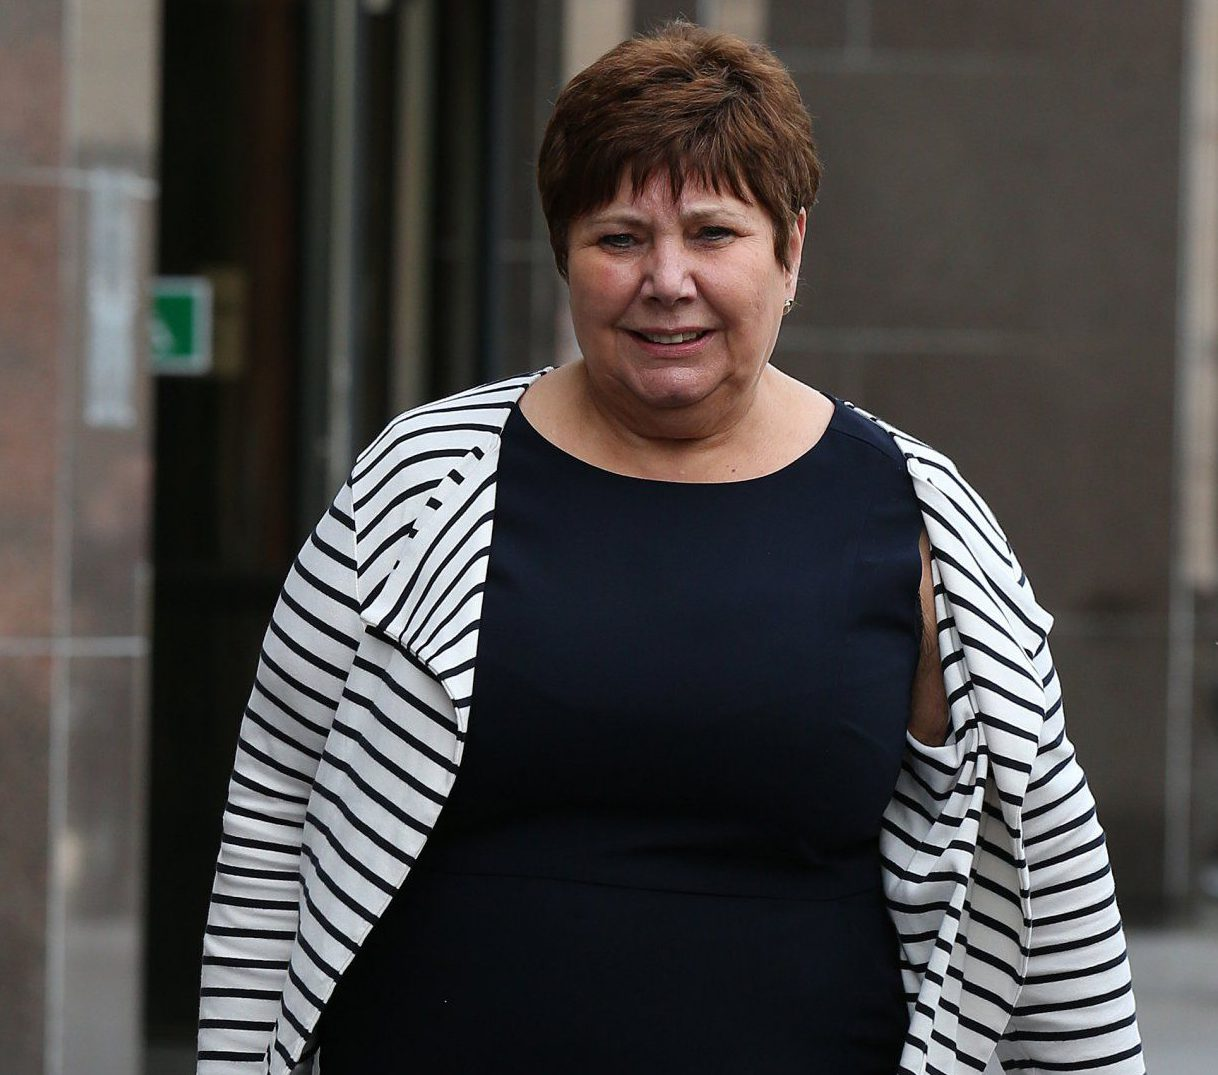 Labour MP Marie Rimmer leaves Glasgow Sheriff Court where she had appeared after being accused of kicking a Yes campaigner on the day of the Scottish independence referendum. The case against Ms Rimmer collapsed because the word Glasgow was not included in court papers outlining the charge. PRESS ASSOCIATION Photo. Picture date: Monday August 3, 2015. See PA story COURTS Referendum. Photo credit should read: Andrew Milligan/PA Wire